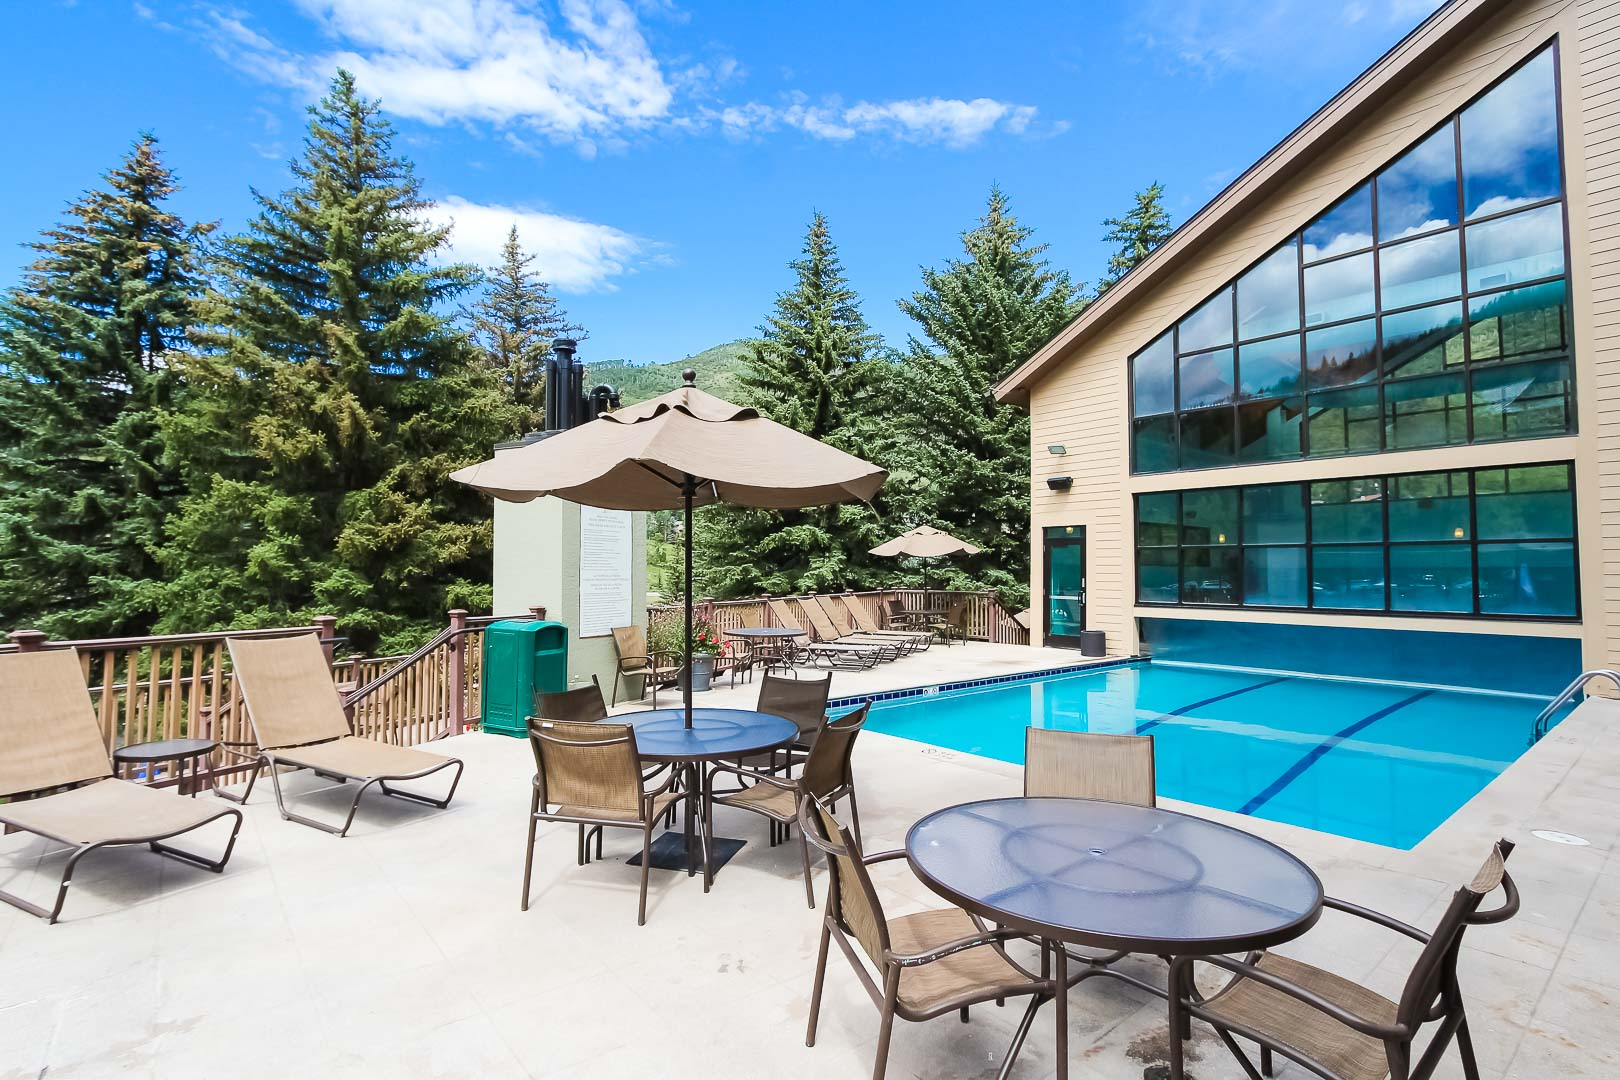 A scenic view of the outdoor swimming pool at VRI's Aspen at Streamside in Colorado.